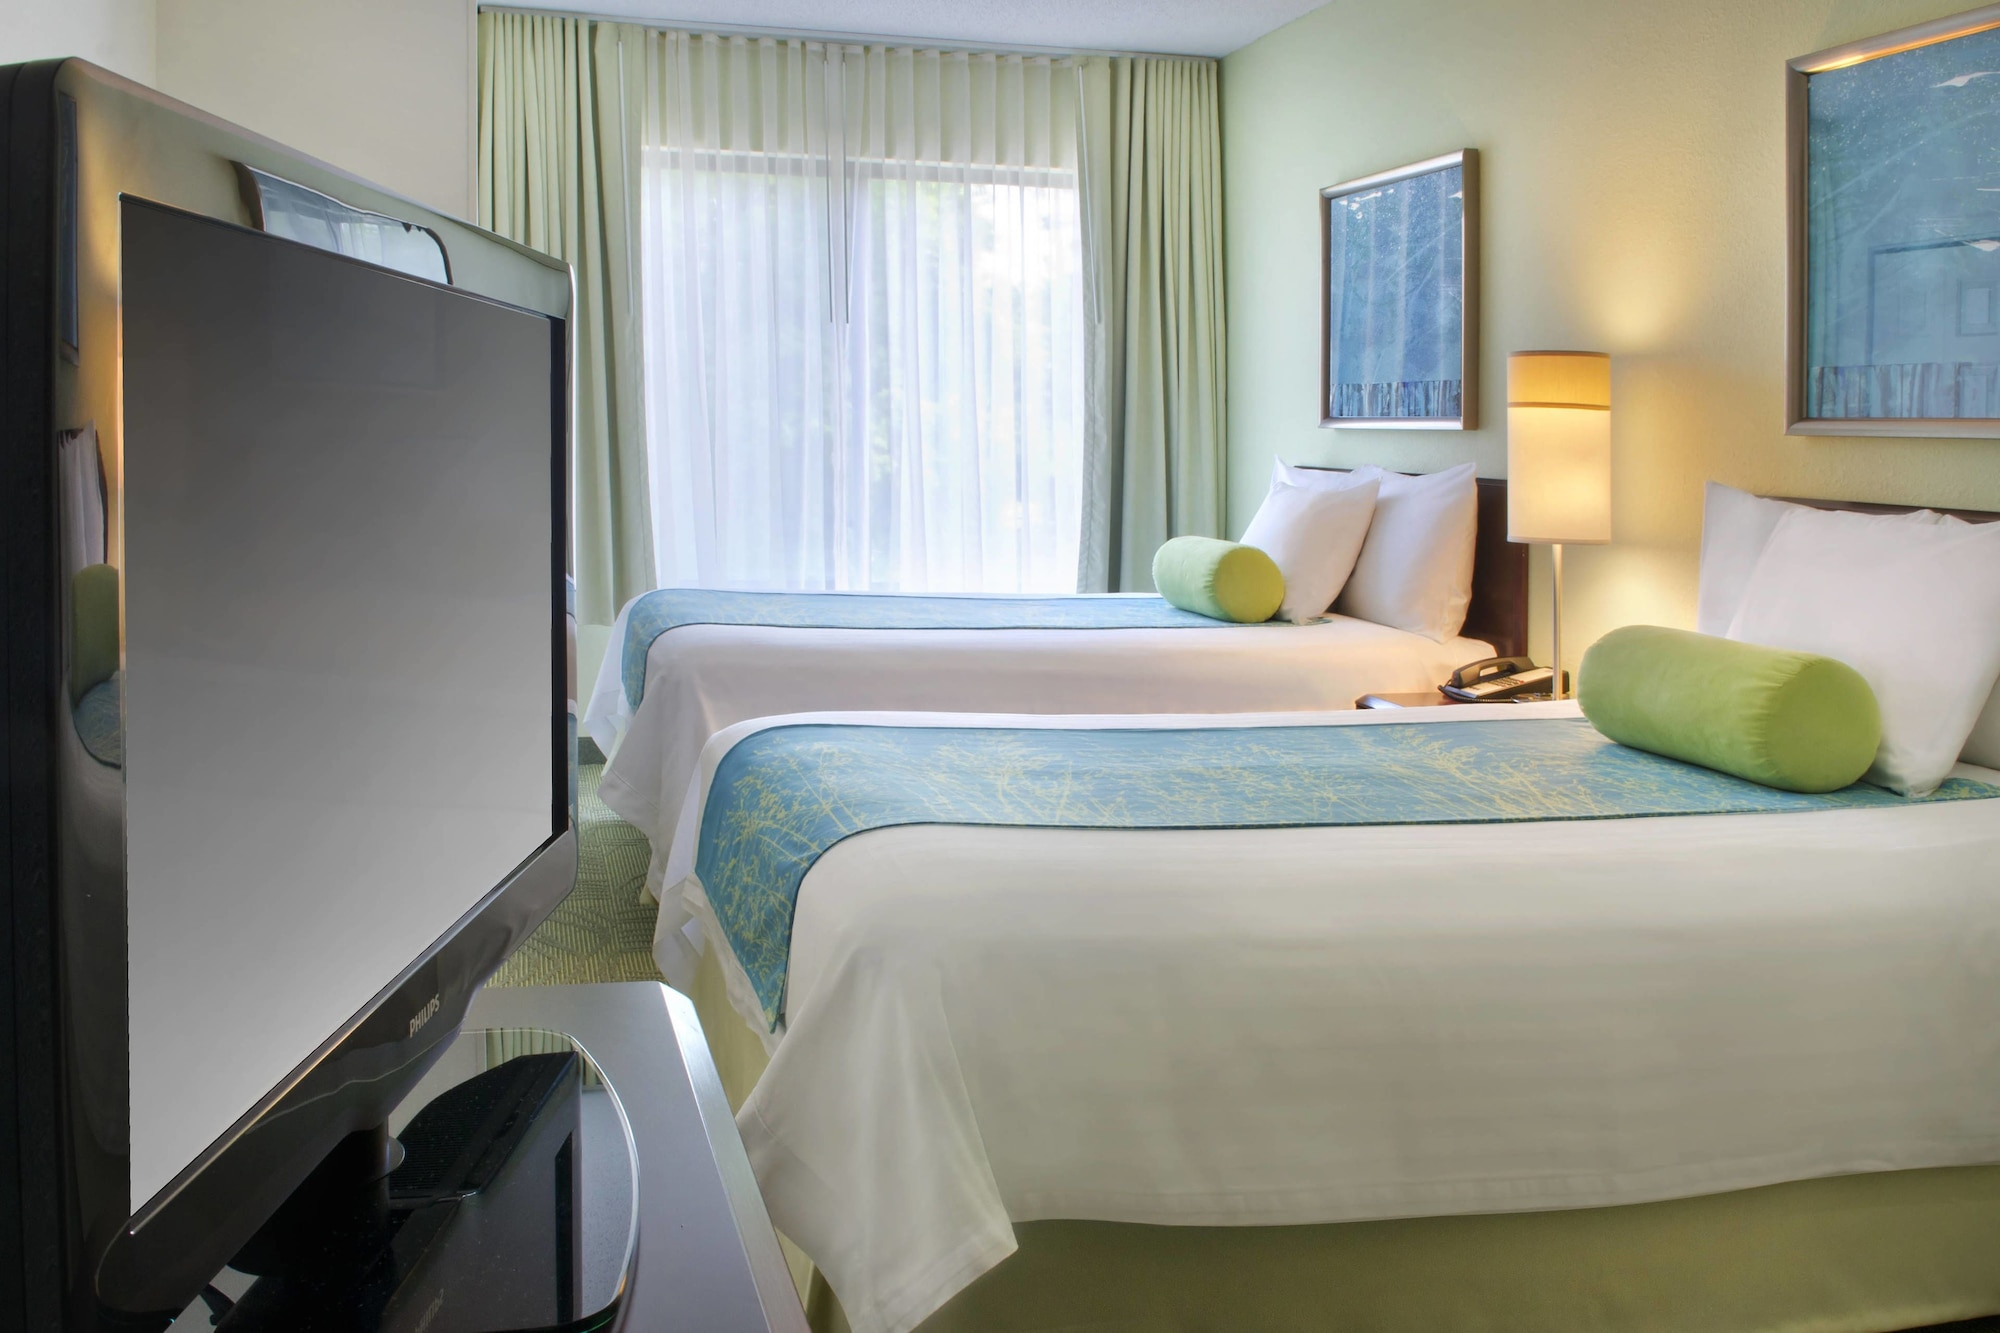 SpringHill Suites by Marriott Boston/Andover, Essex